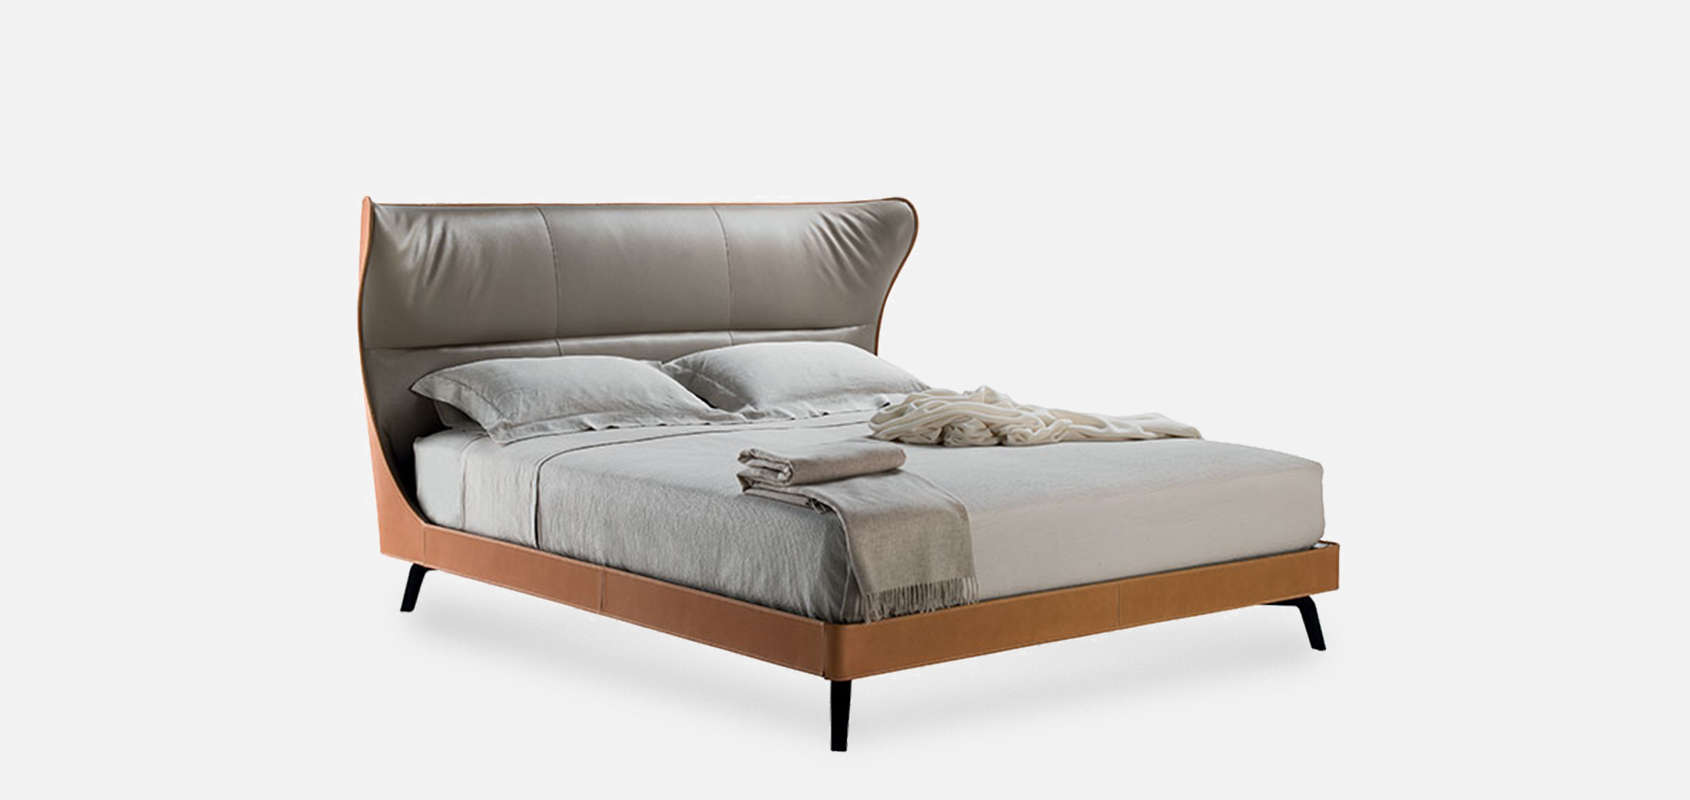 Poltrona Frau Mamy Blue Bed.Mamy Blue Bed By Roberto Lazzeroni For Poltrona Frau